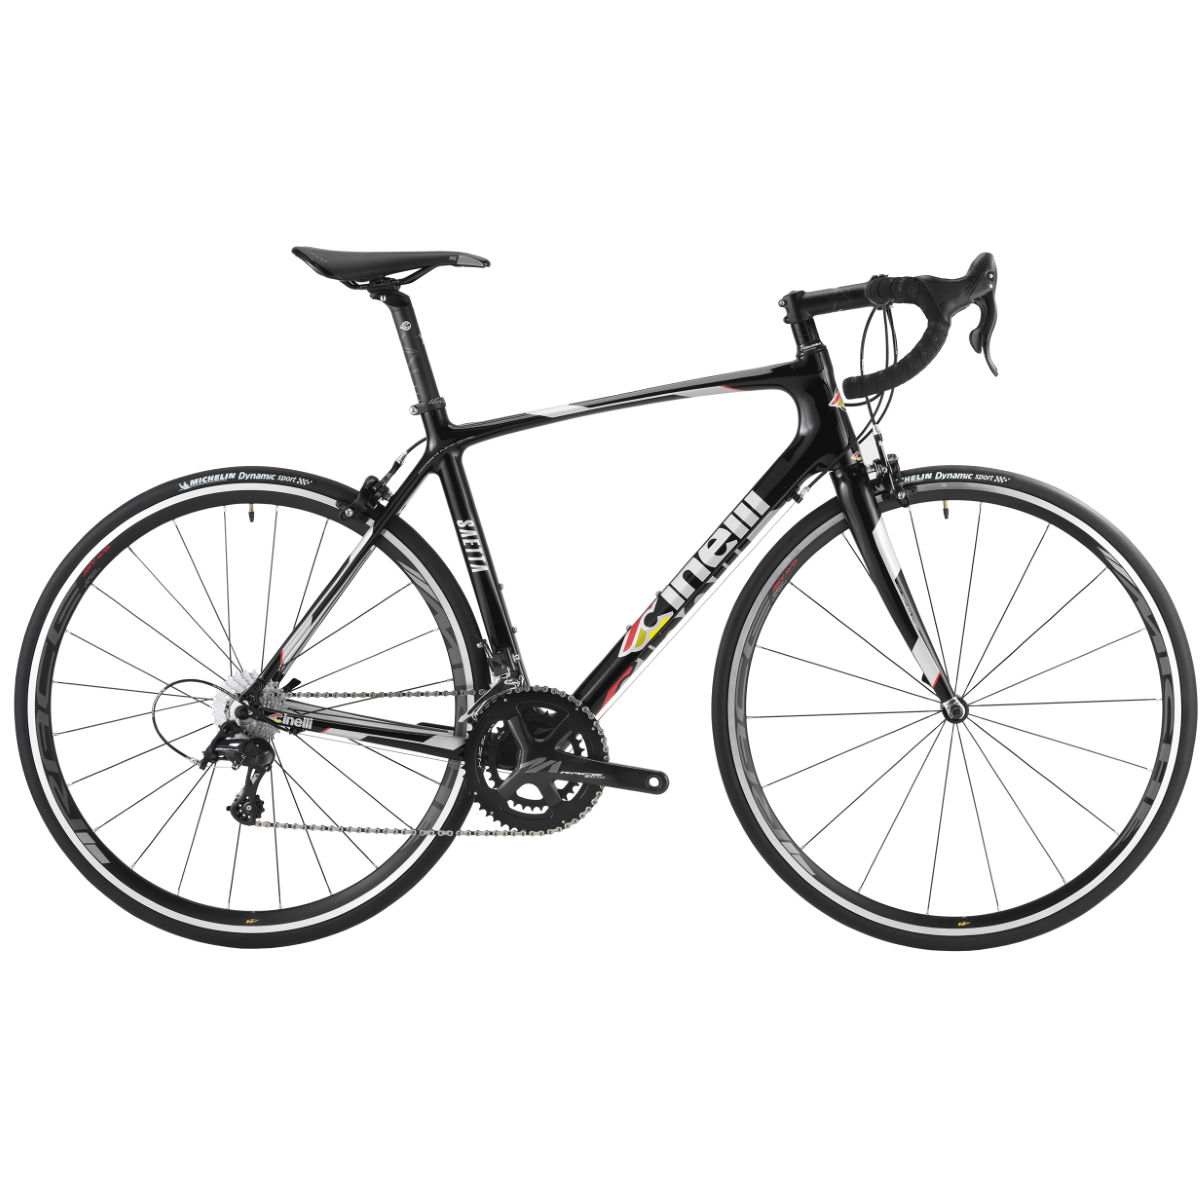 Vélo Cinelli Saetta Centaur - Large Stock Bike Black Italo